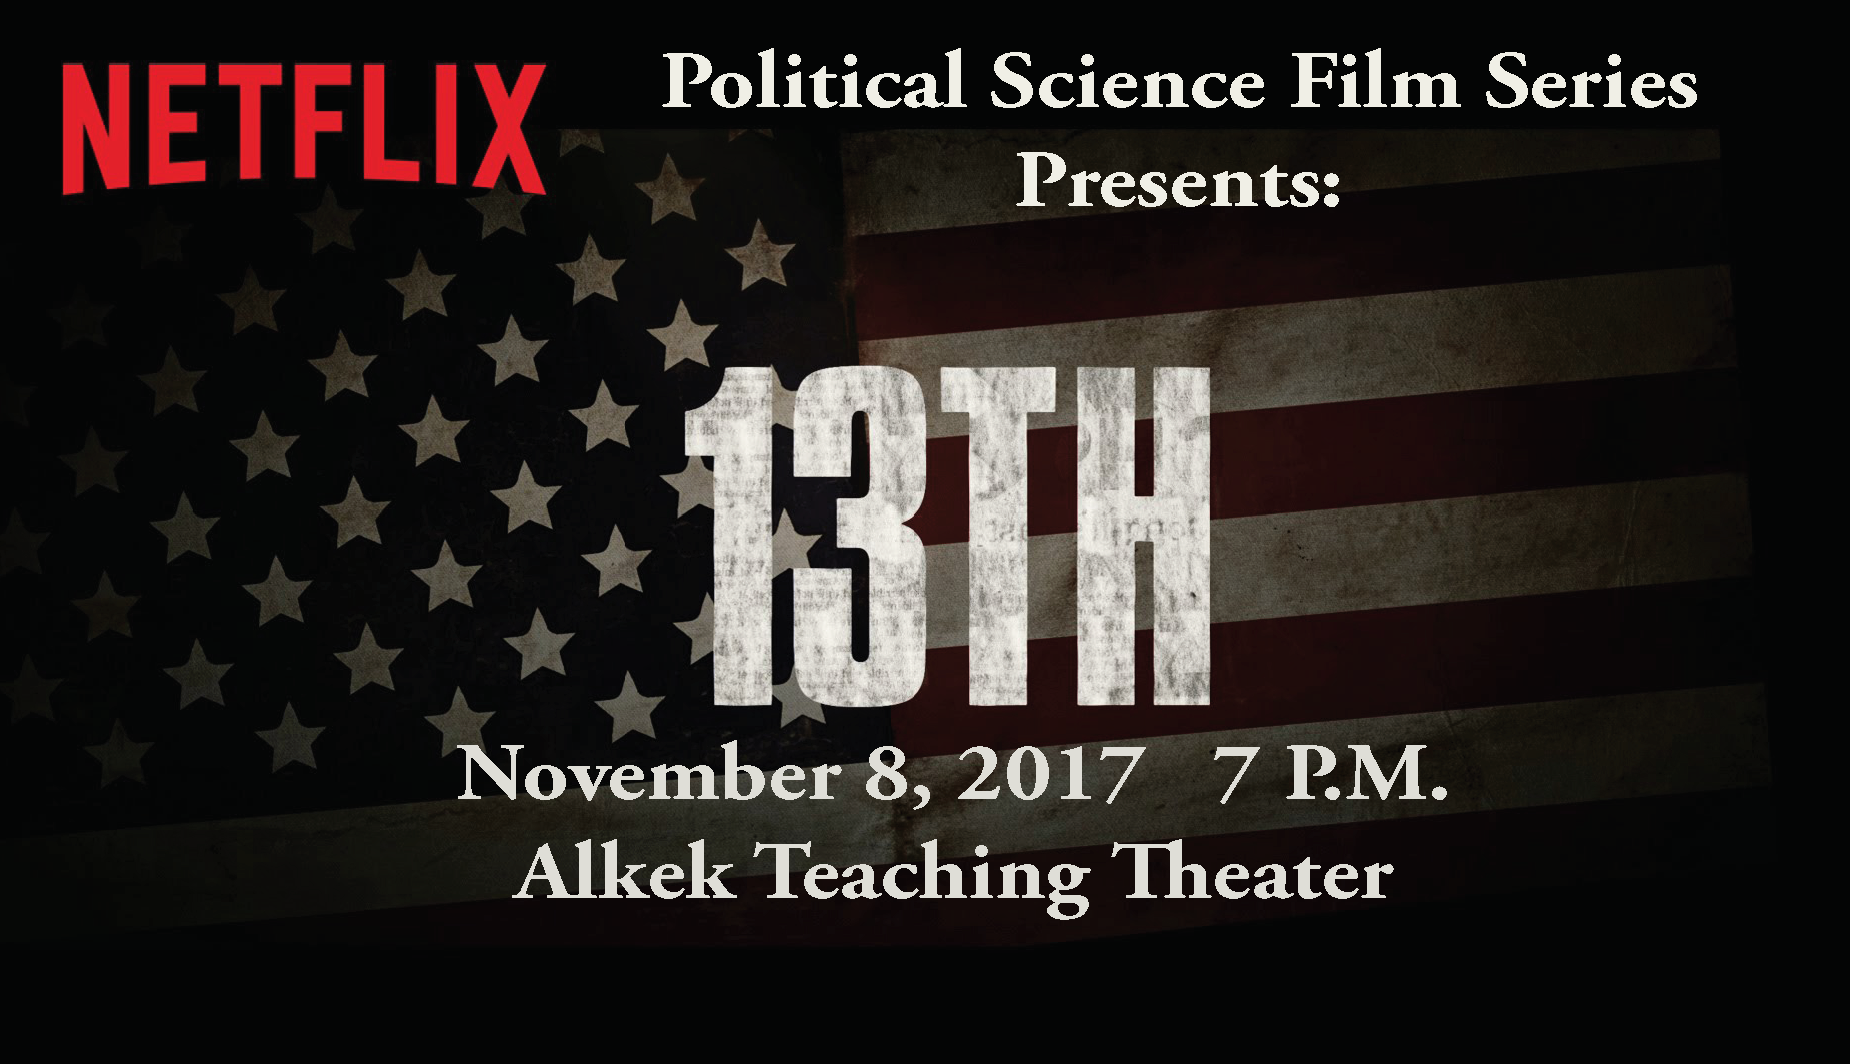 Political Science Film Series: 13th.